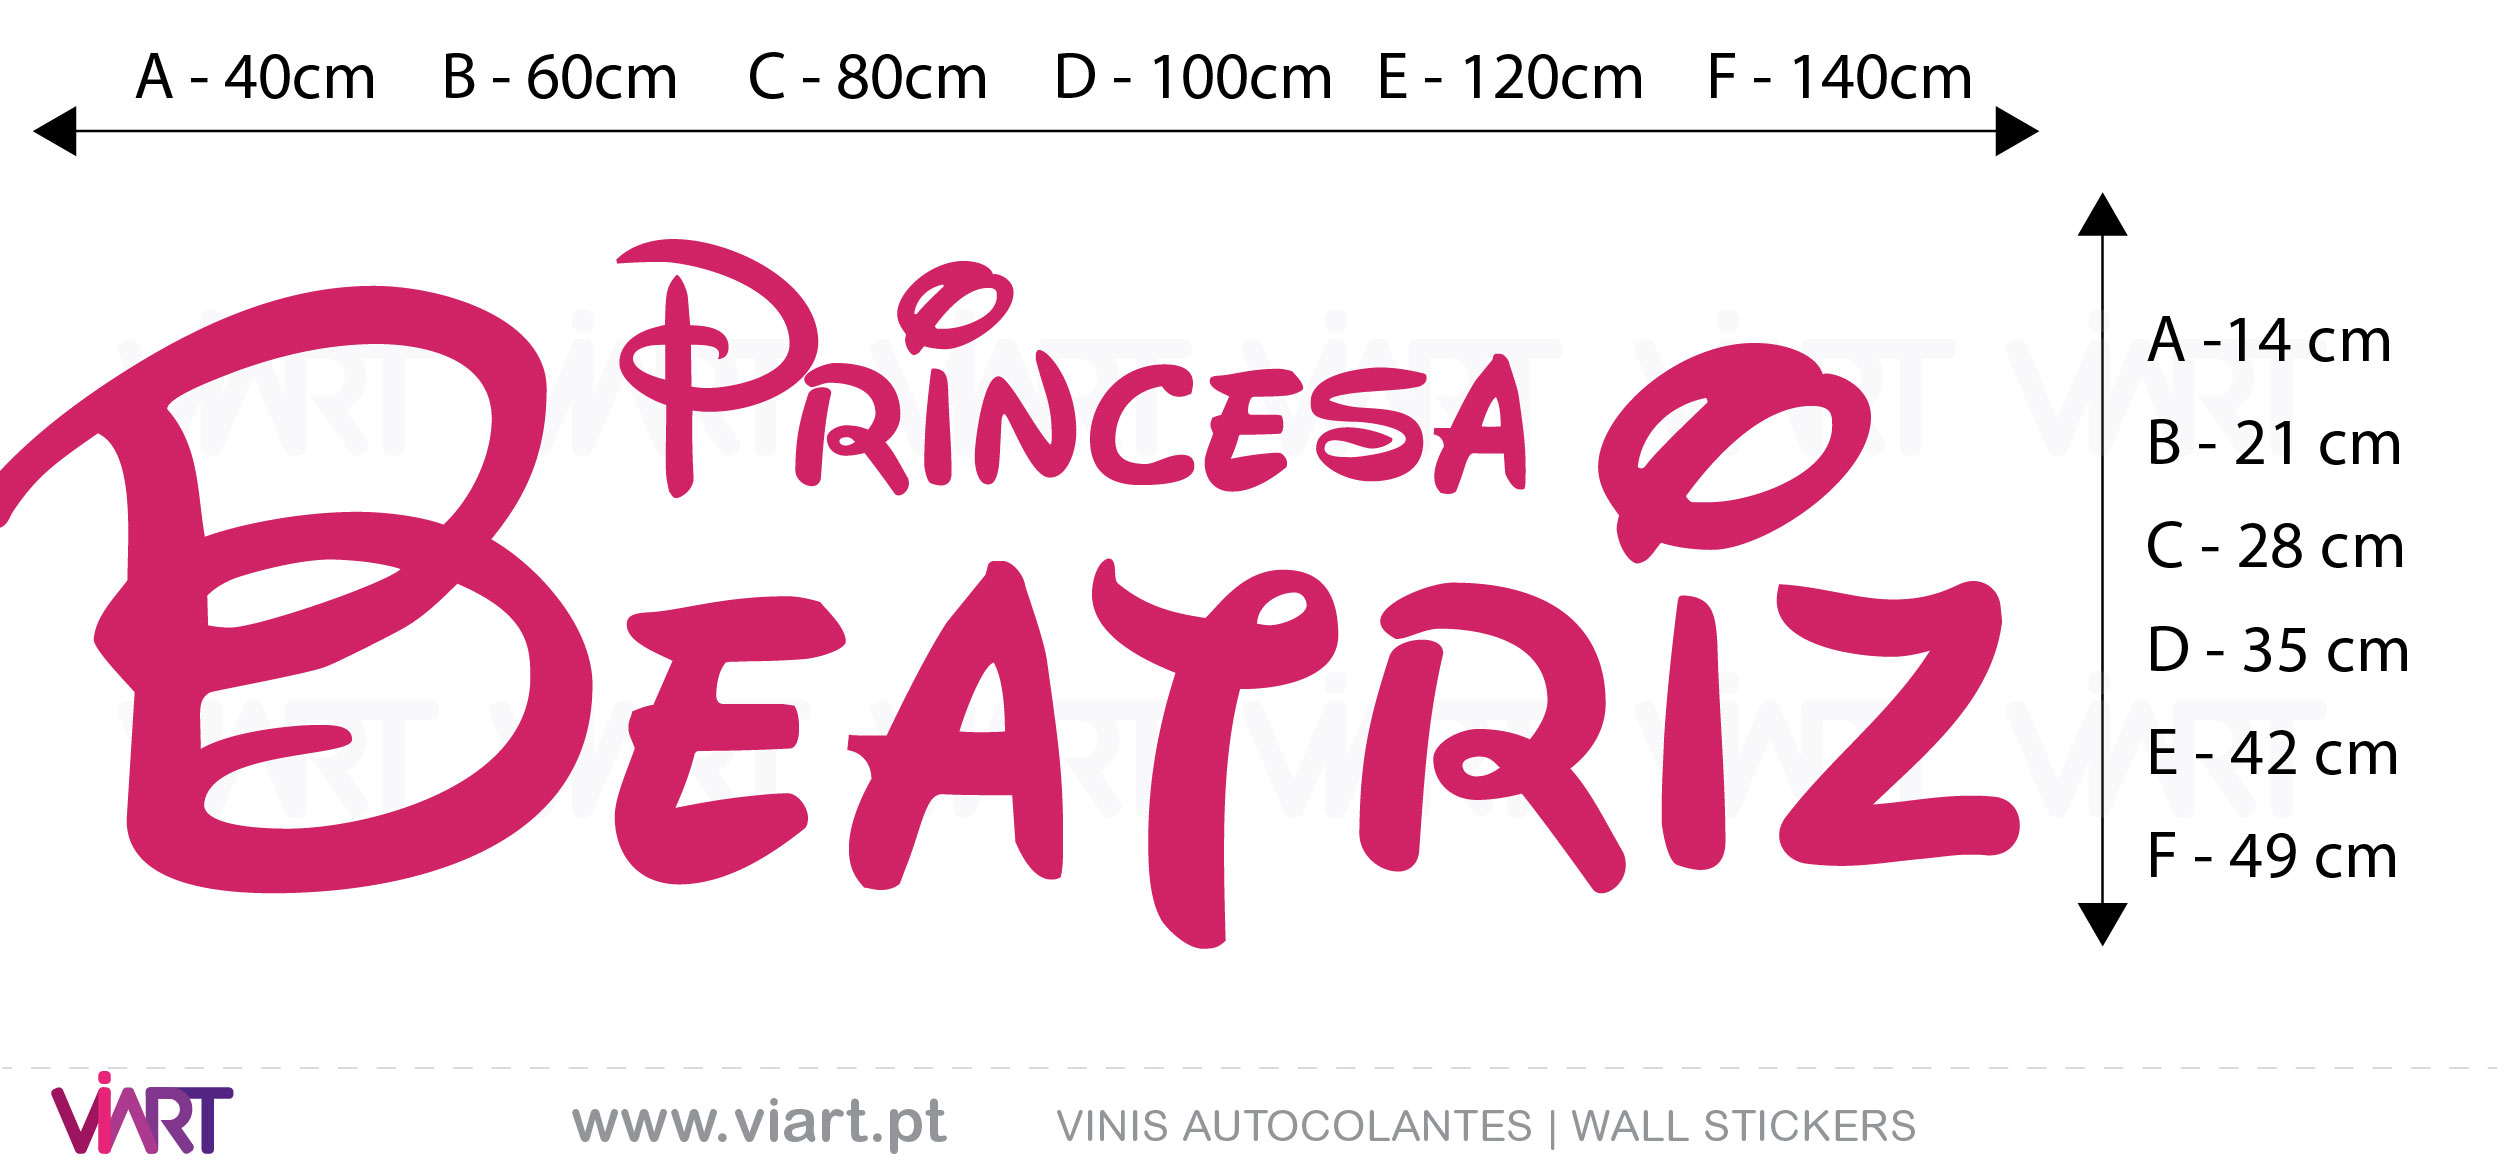 Viart Wall Stickers - Customizable Princess Name- measures